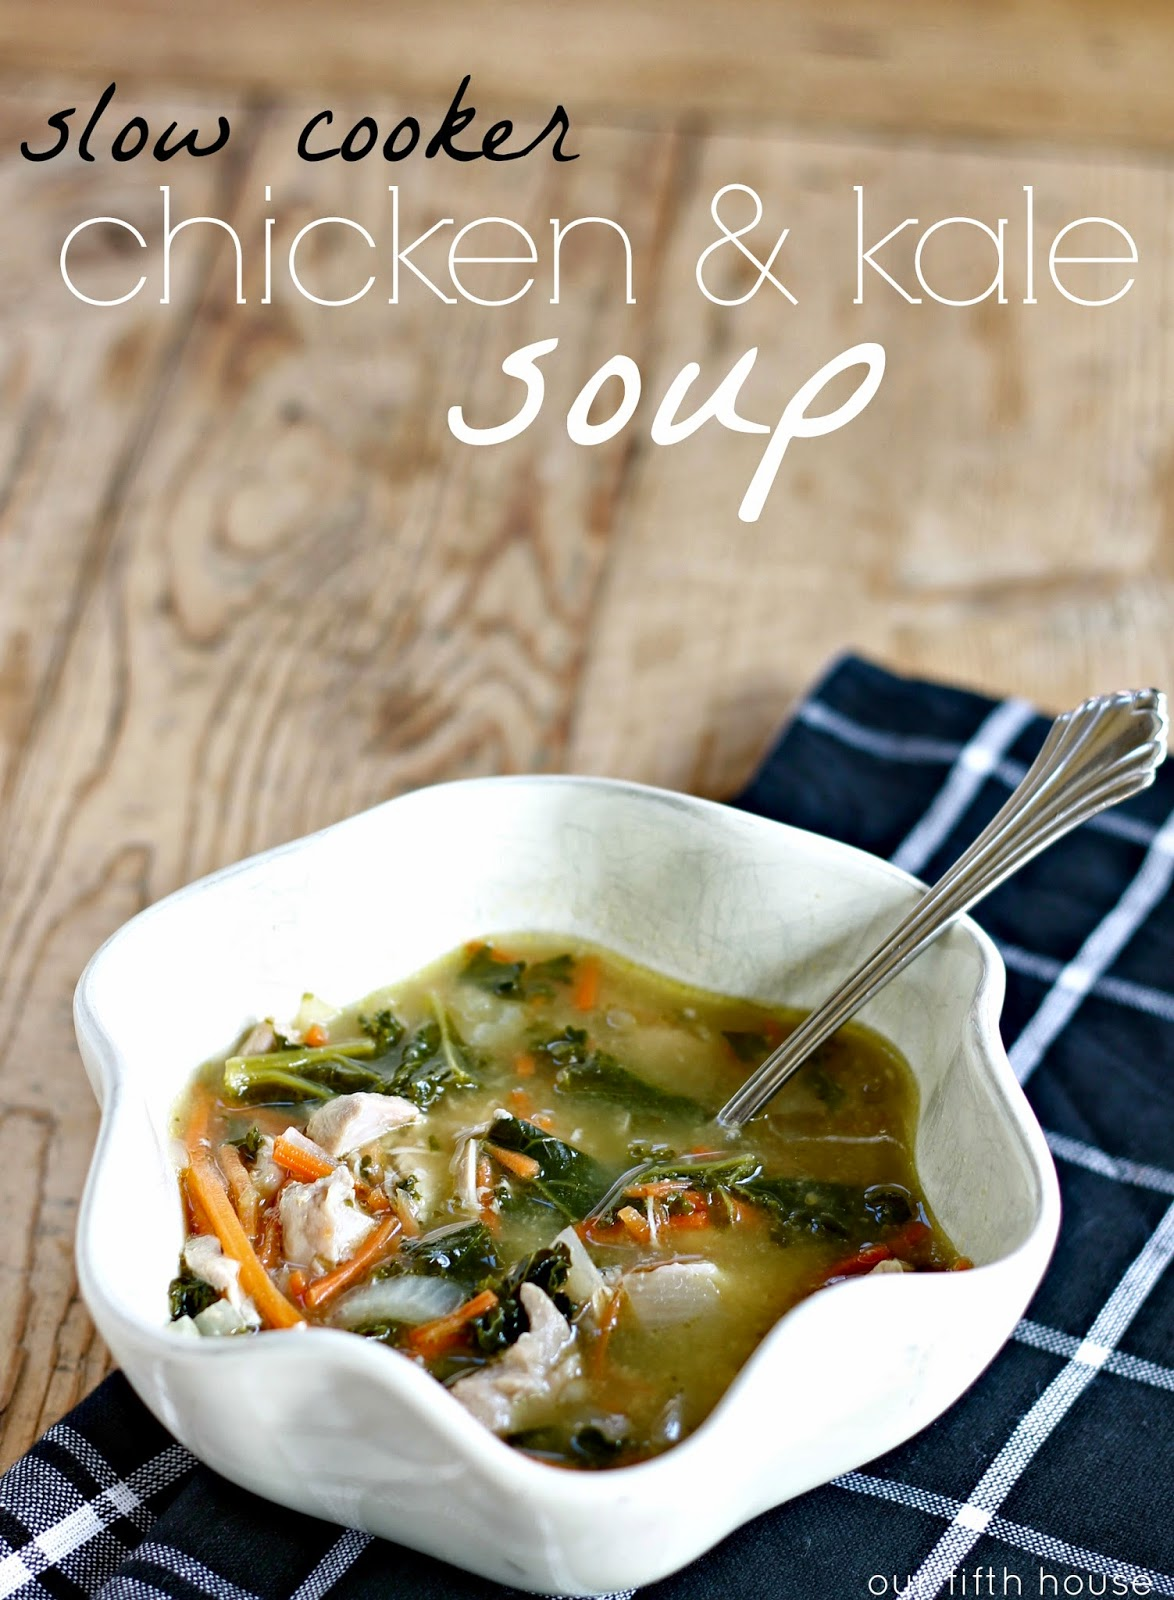 slow cooker chicken & kale soup - Our Fifth House